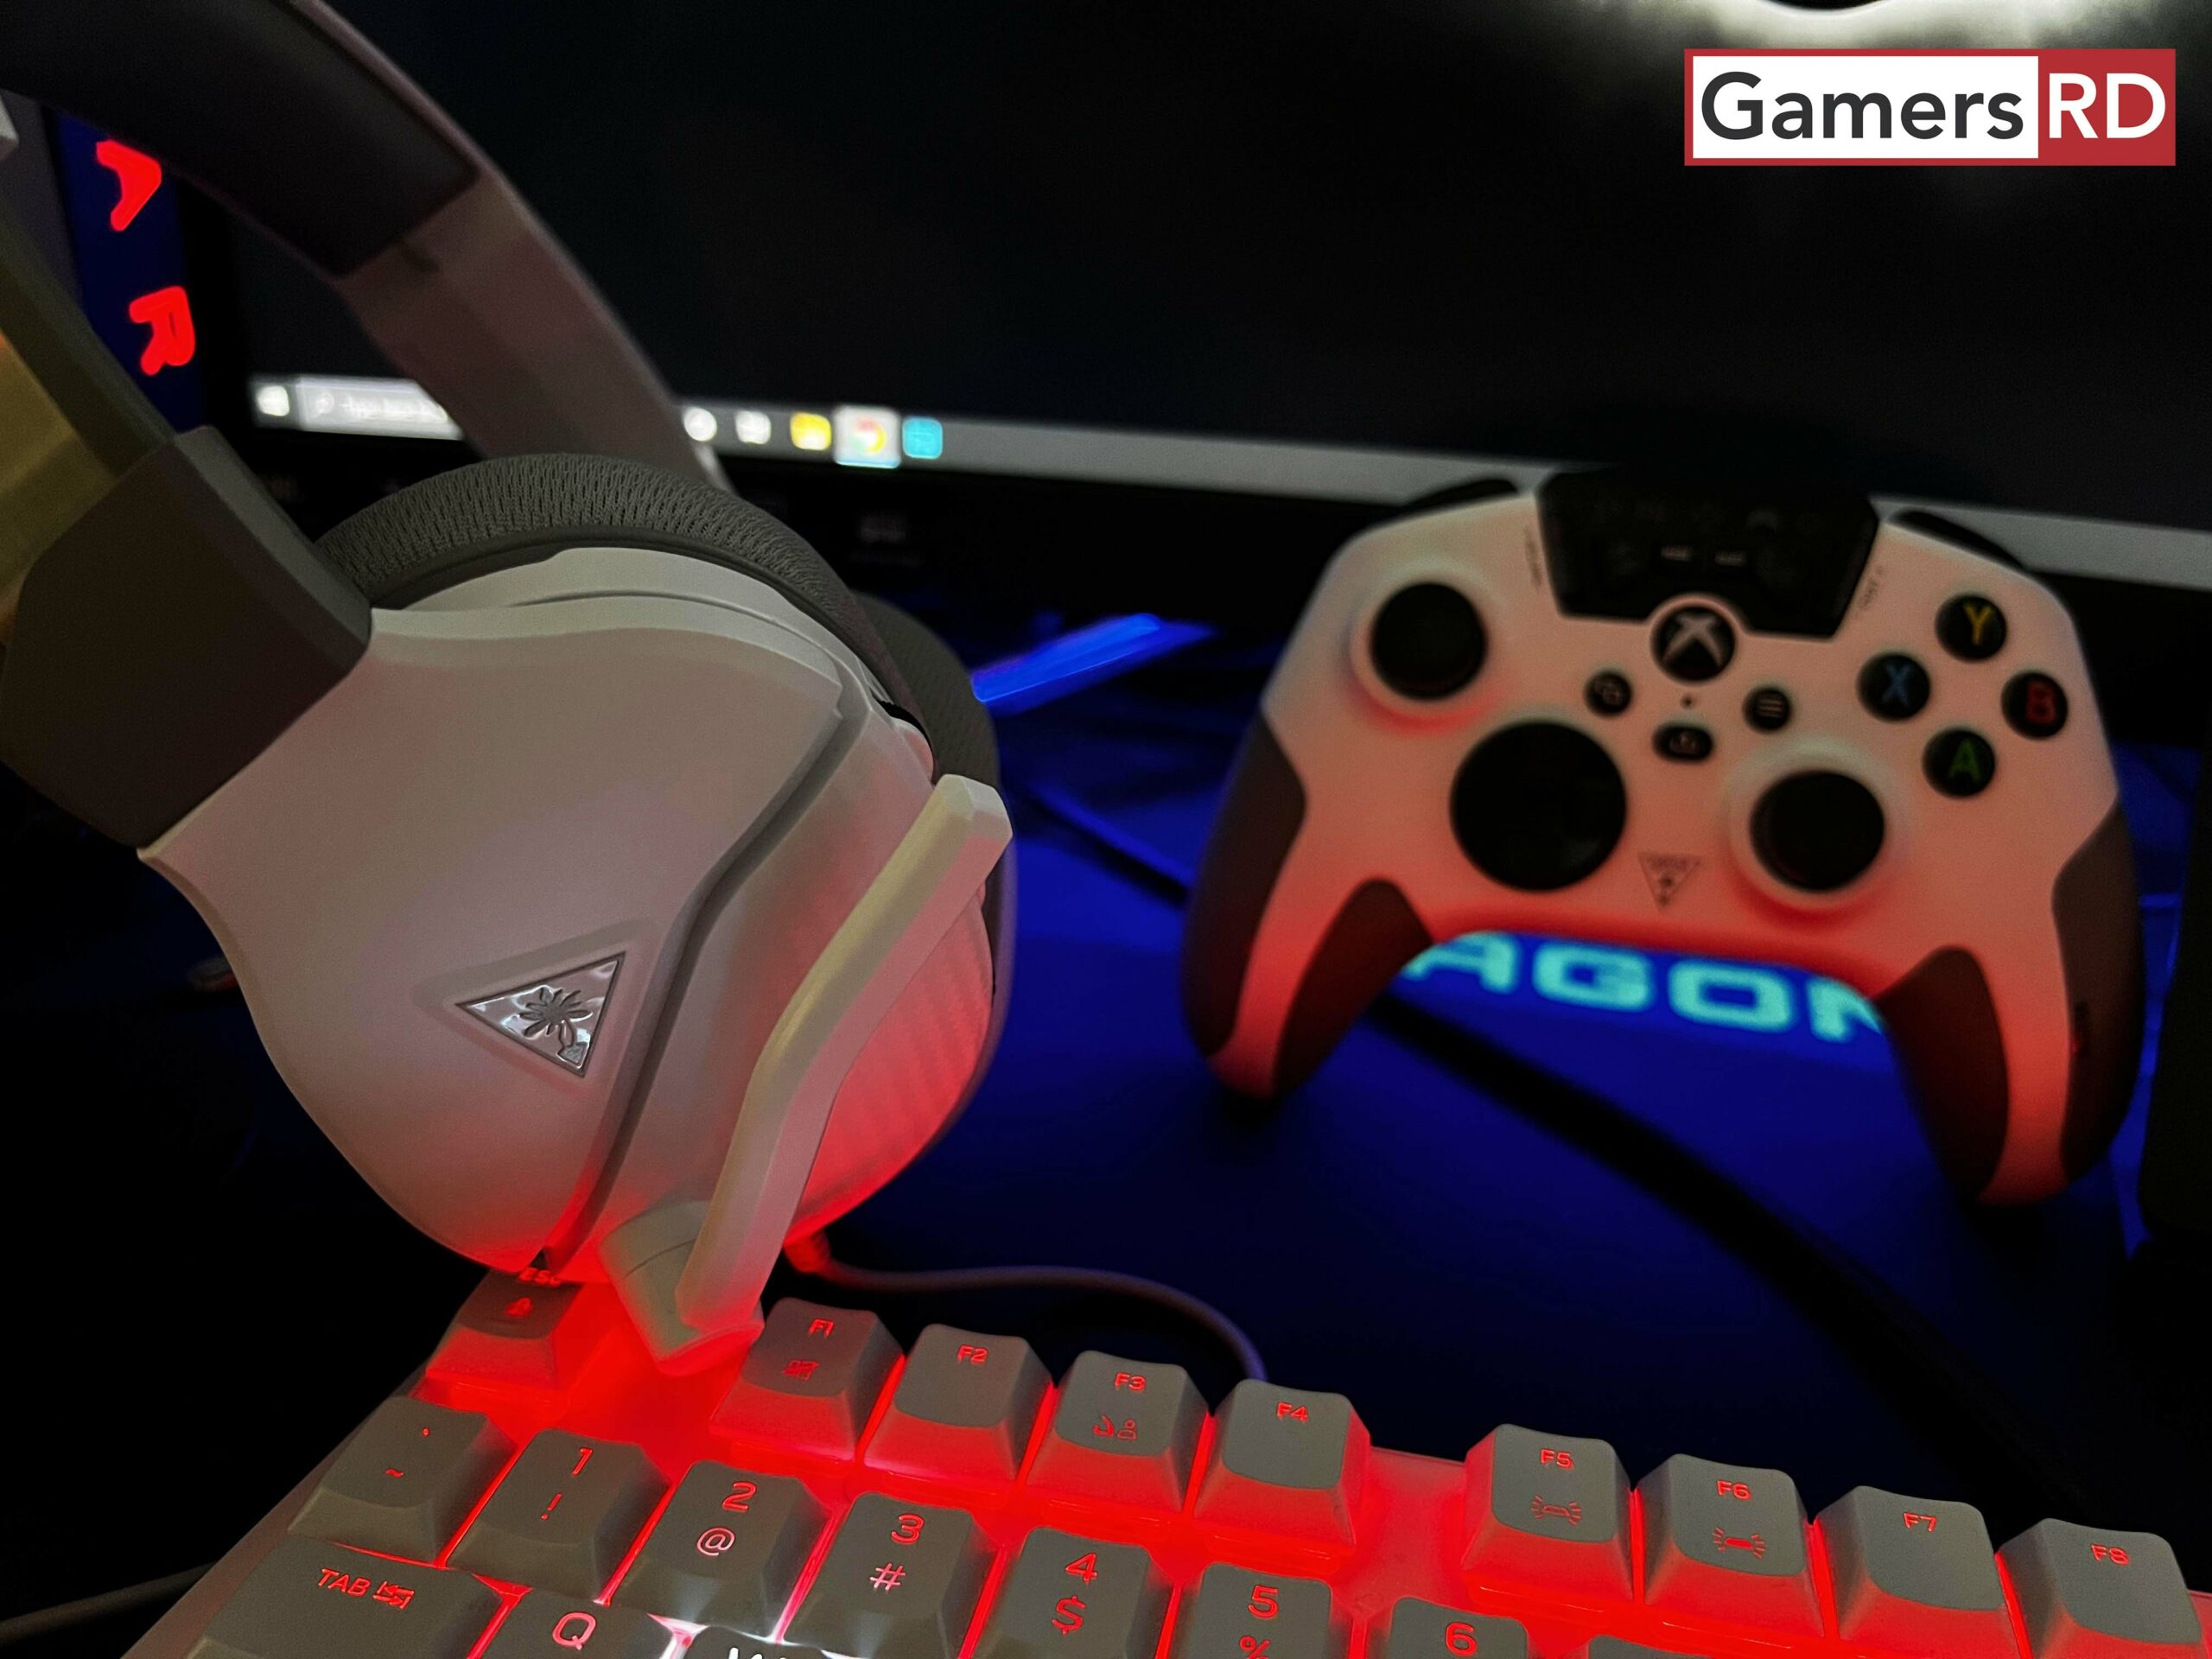 Turtle Beach Recon 200 Gen 2 Headsets Review, 7 GamersRD